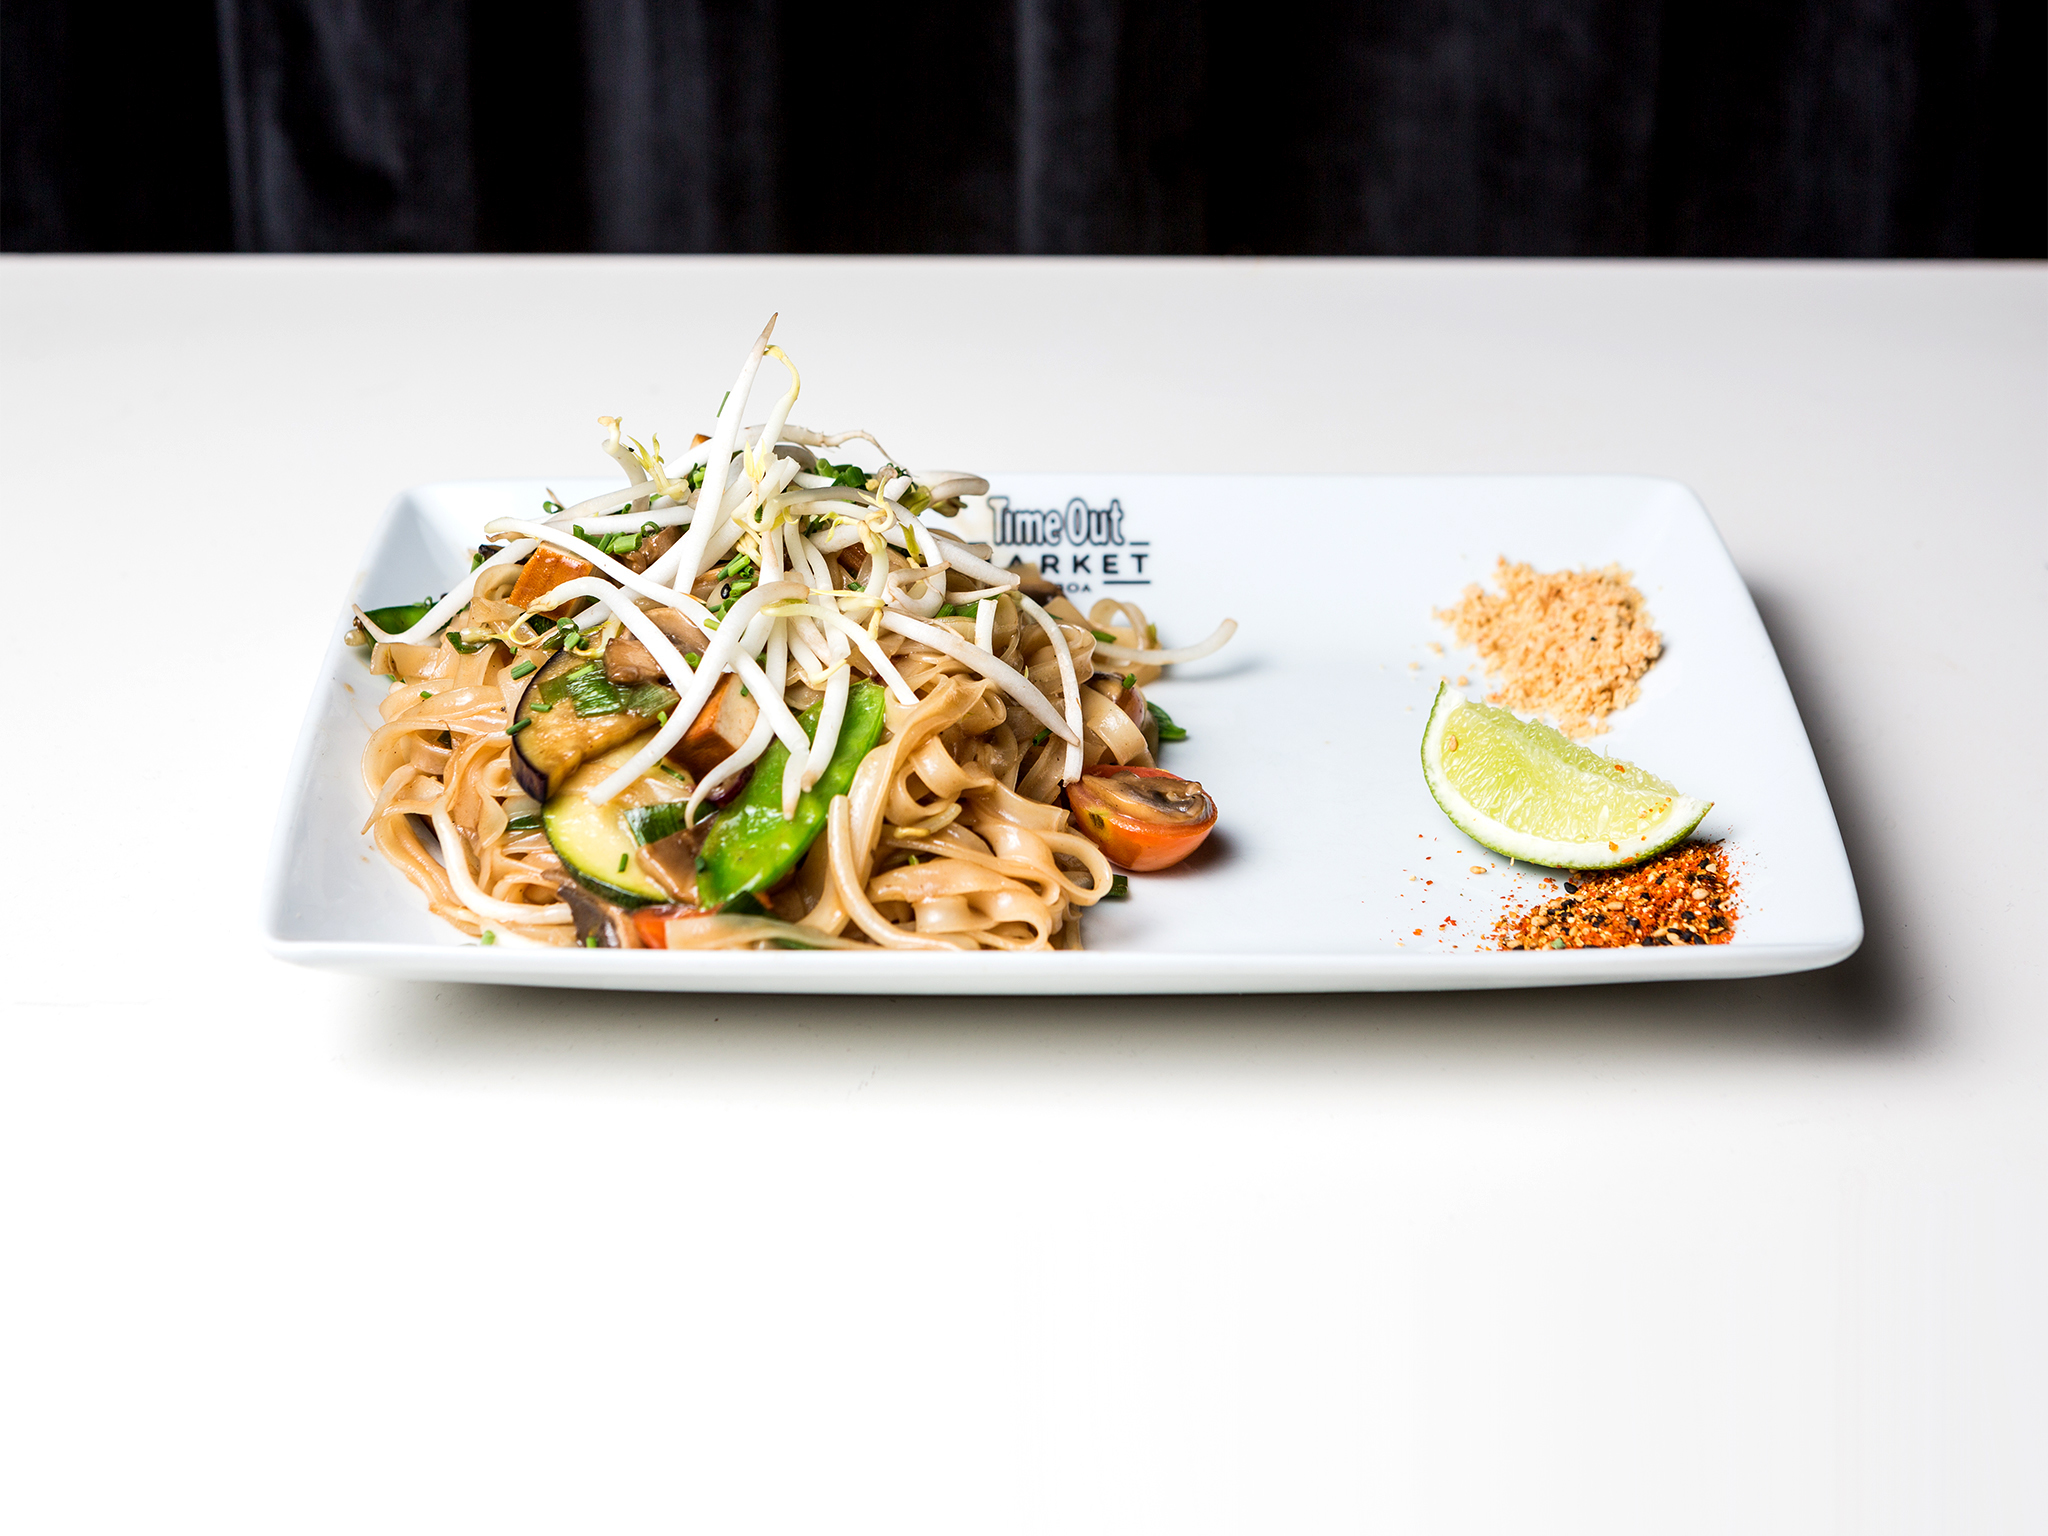 Restaurante, Time Out Market, Asian Lab, Pad Thai Vegetariano